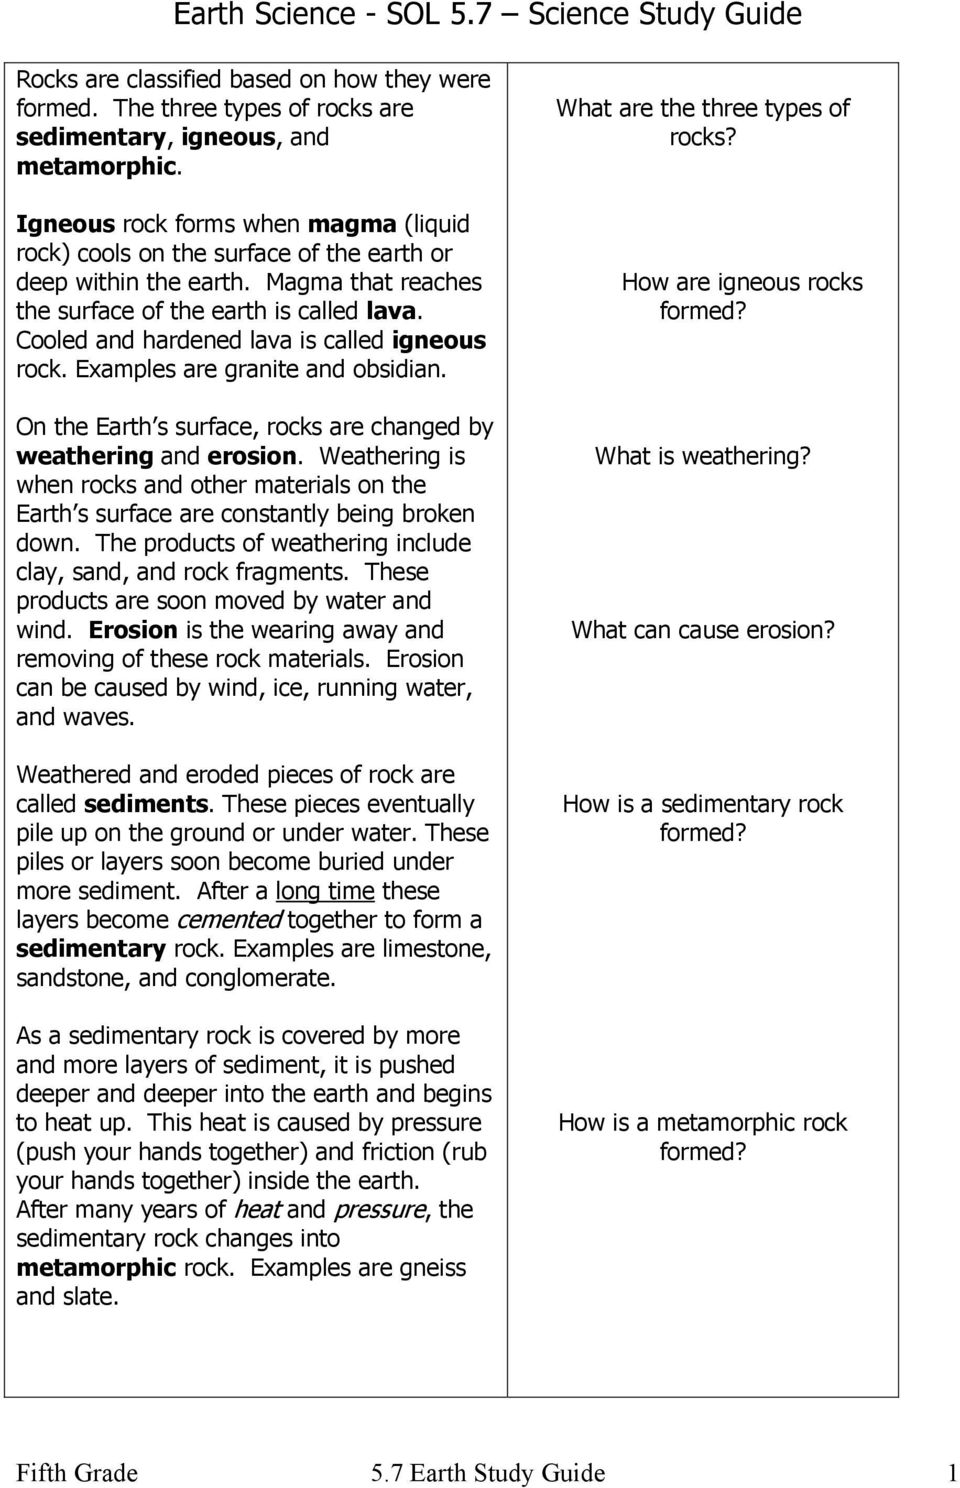 medium resolution of Earth Science - SOL 5.7 Science Study Guide - PDF Free Download